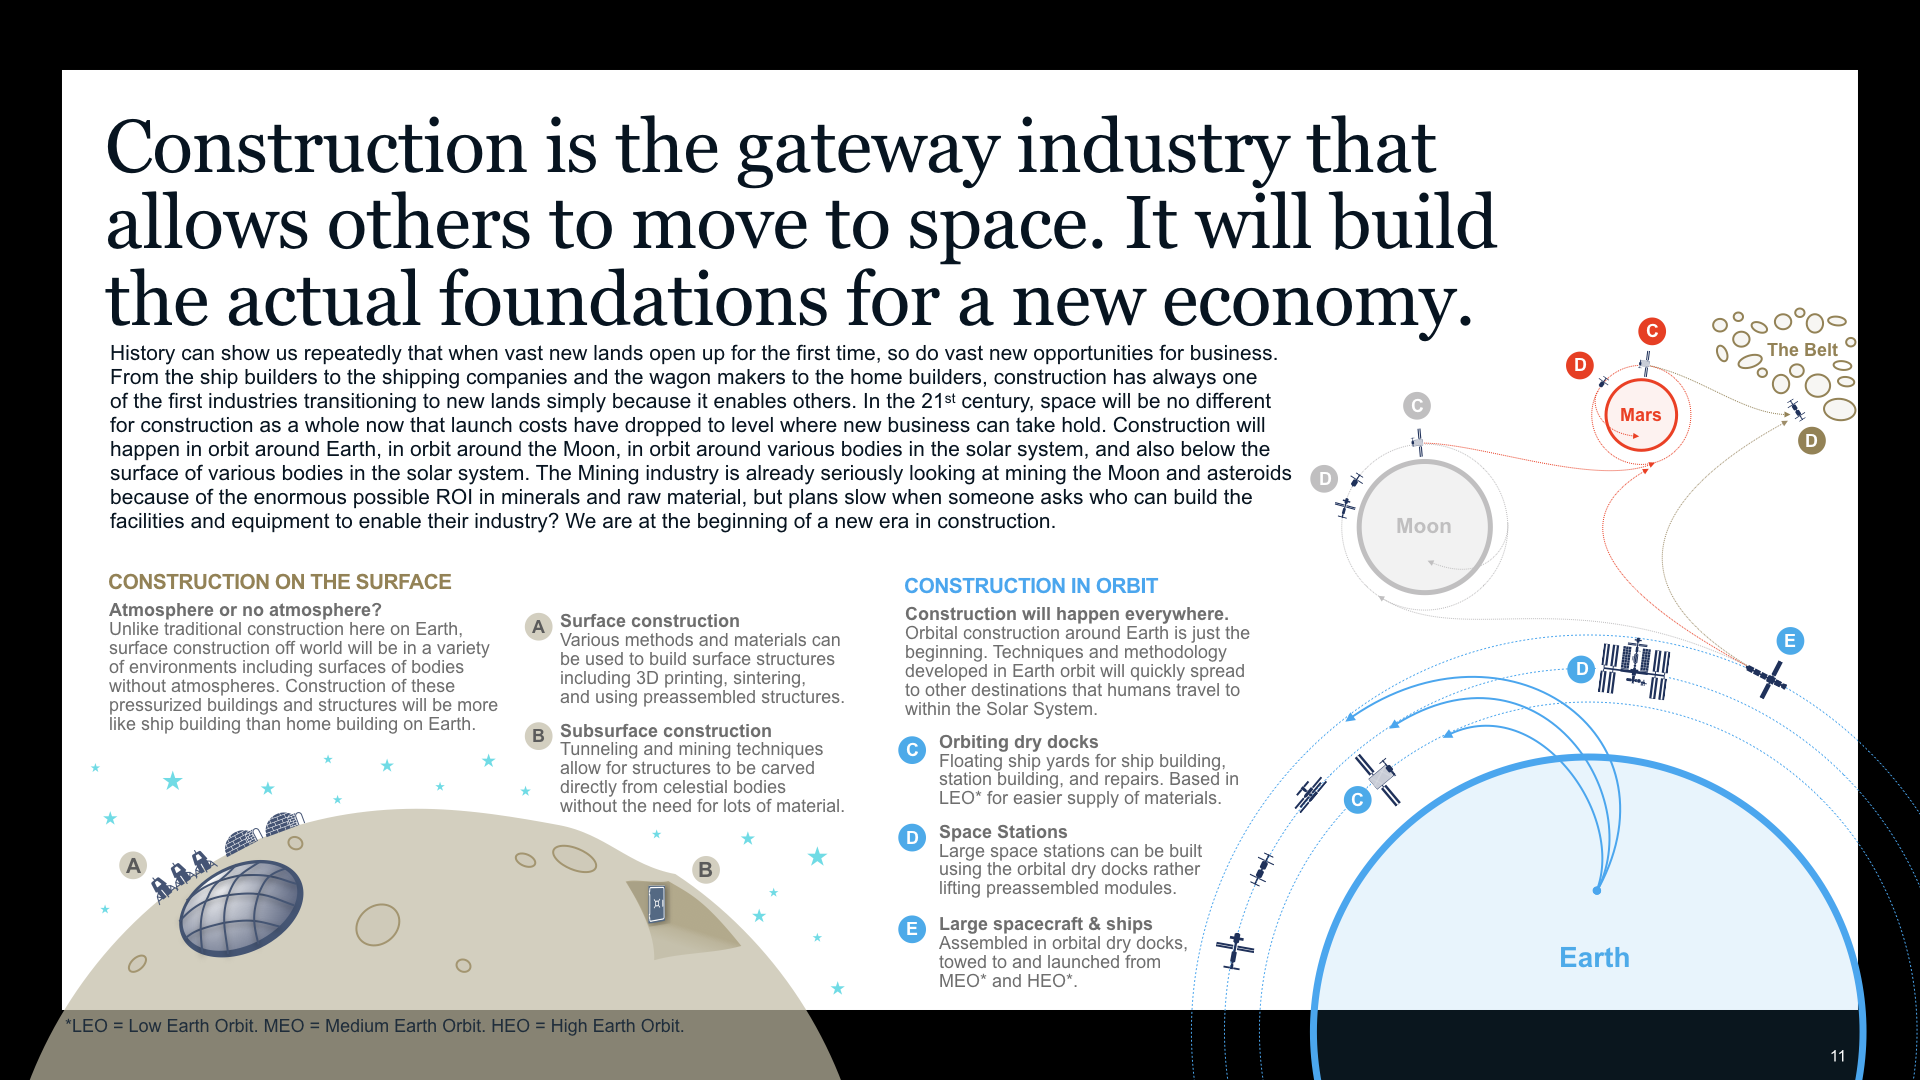 McKinsey_SpaceEconomy2019_CONSTRUCTION_overview_v12.011.png